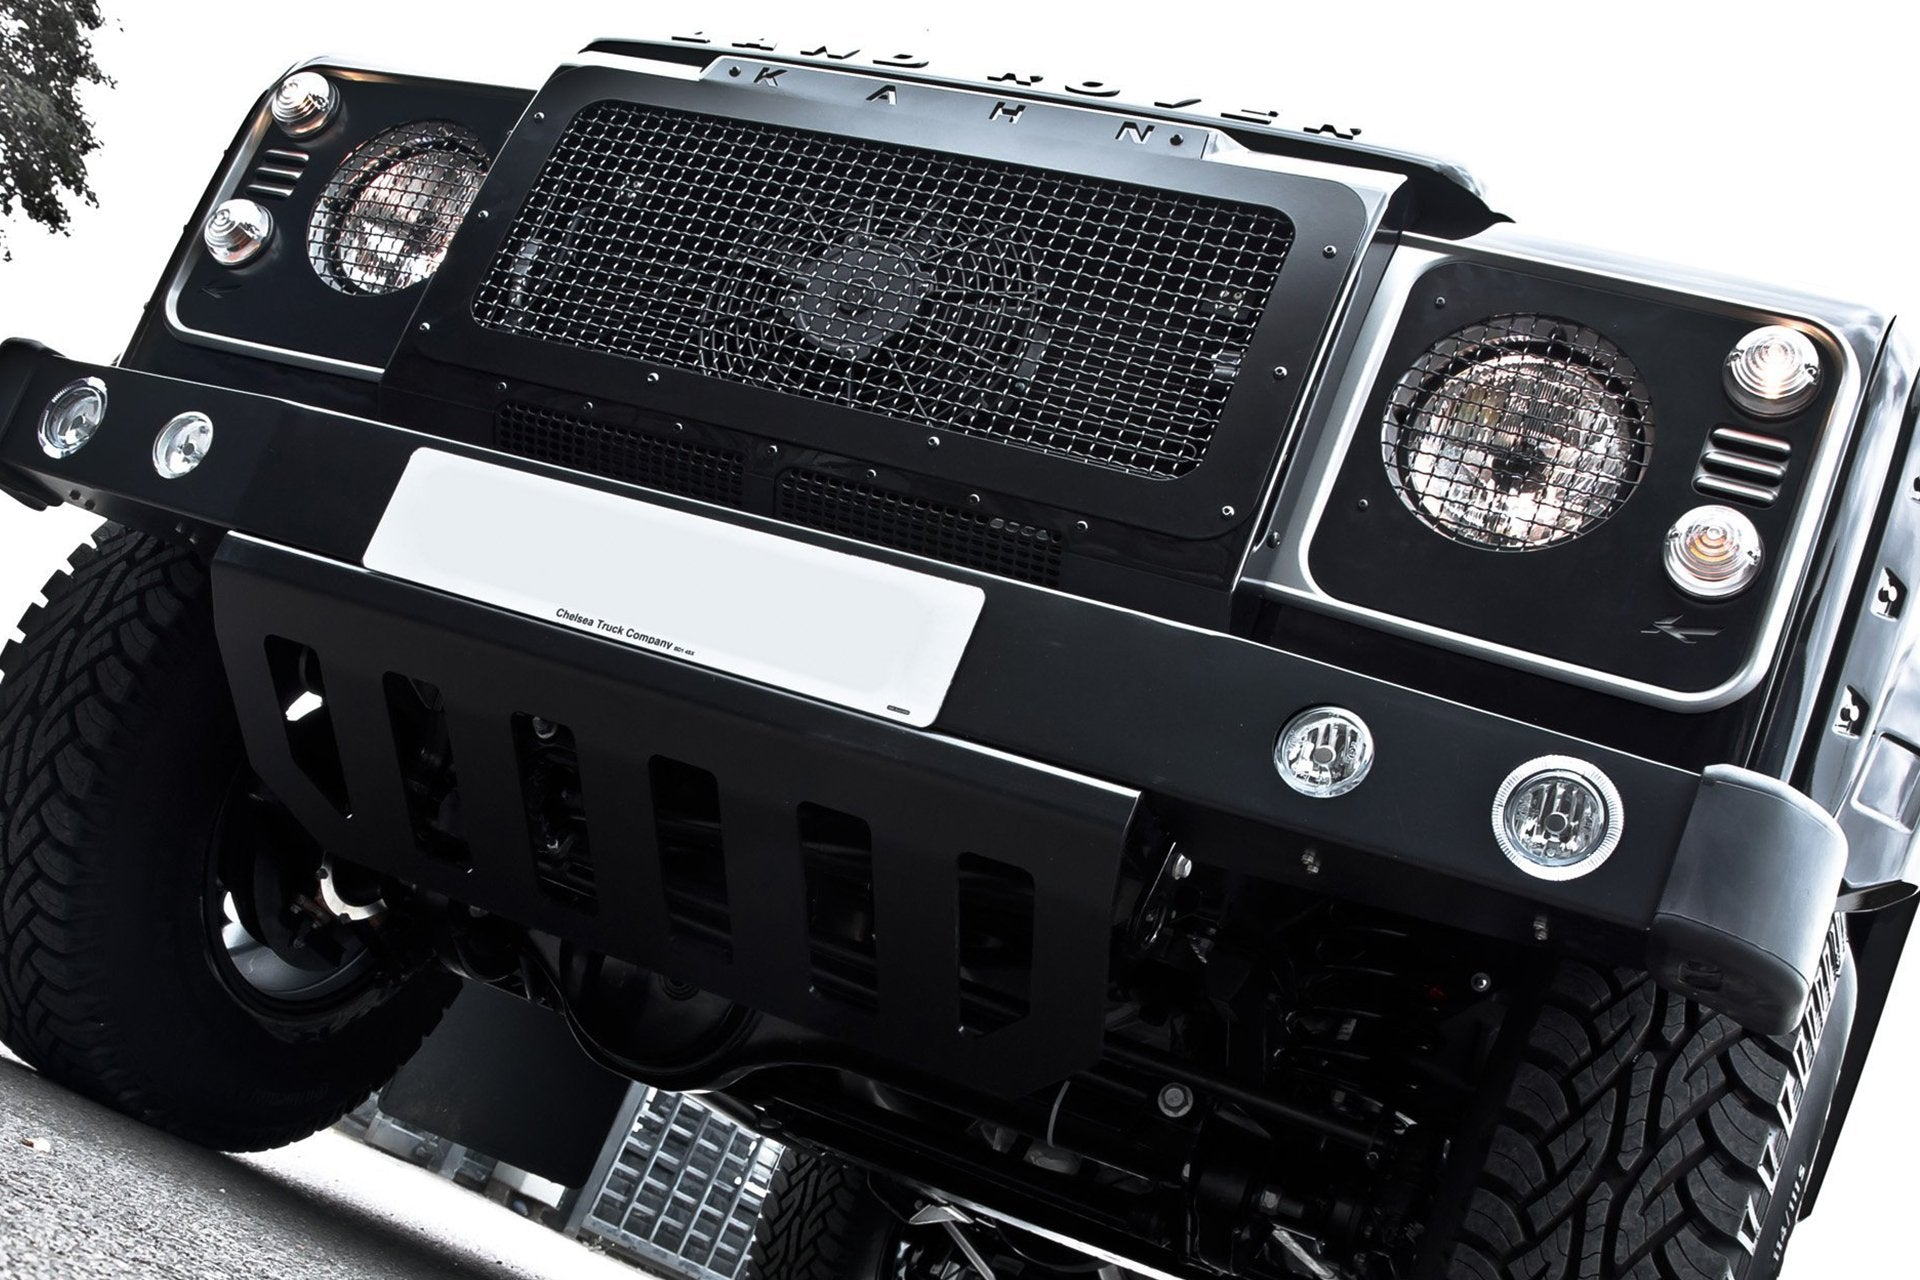 Land Rover Defender 110 (1991-2016) Headlight Covers With Mesh by Chelsea Truck Company - Image 2449